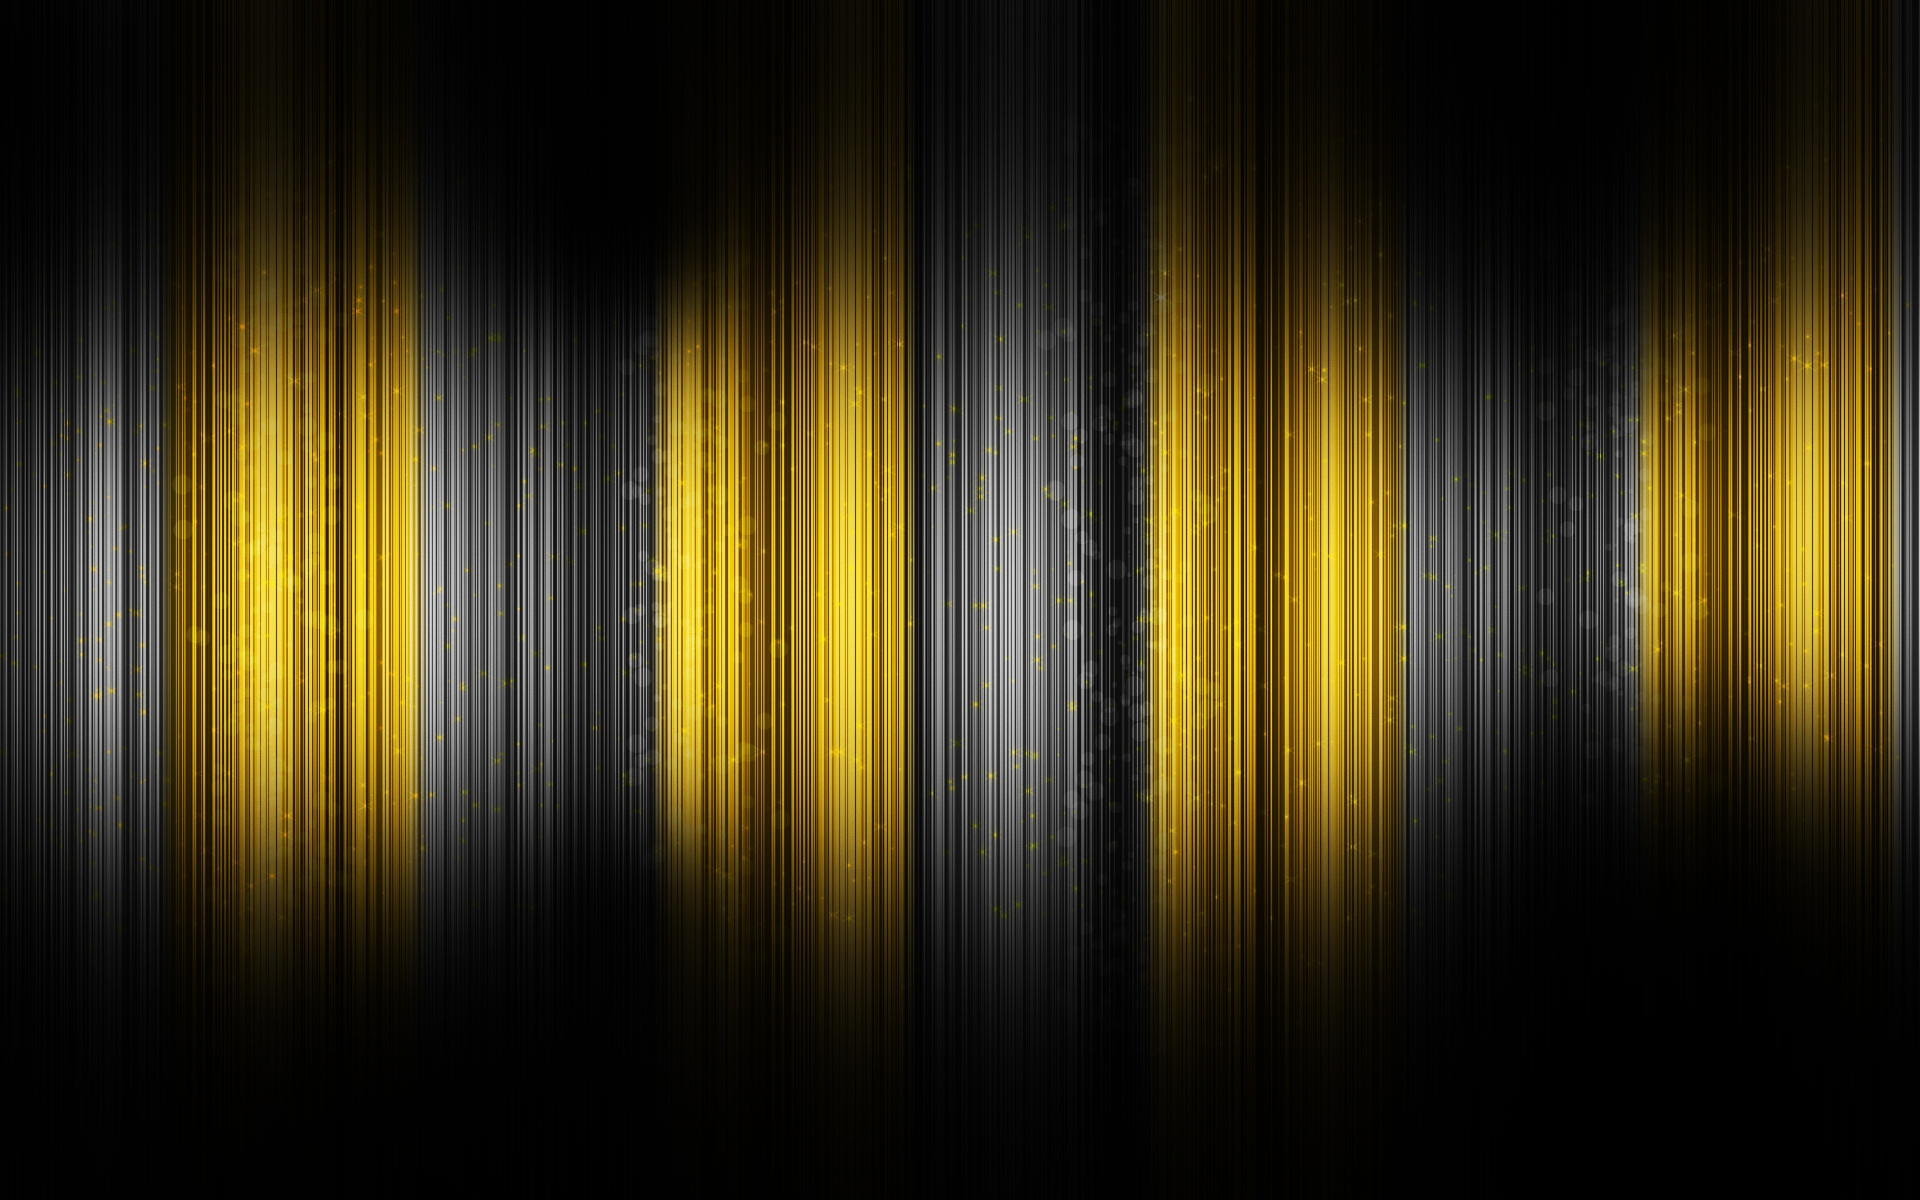 Black And Gold Abstract Wallpaper 26 Hd Wallpaper